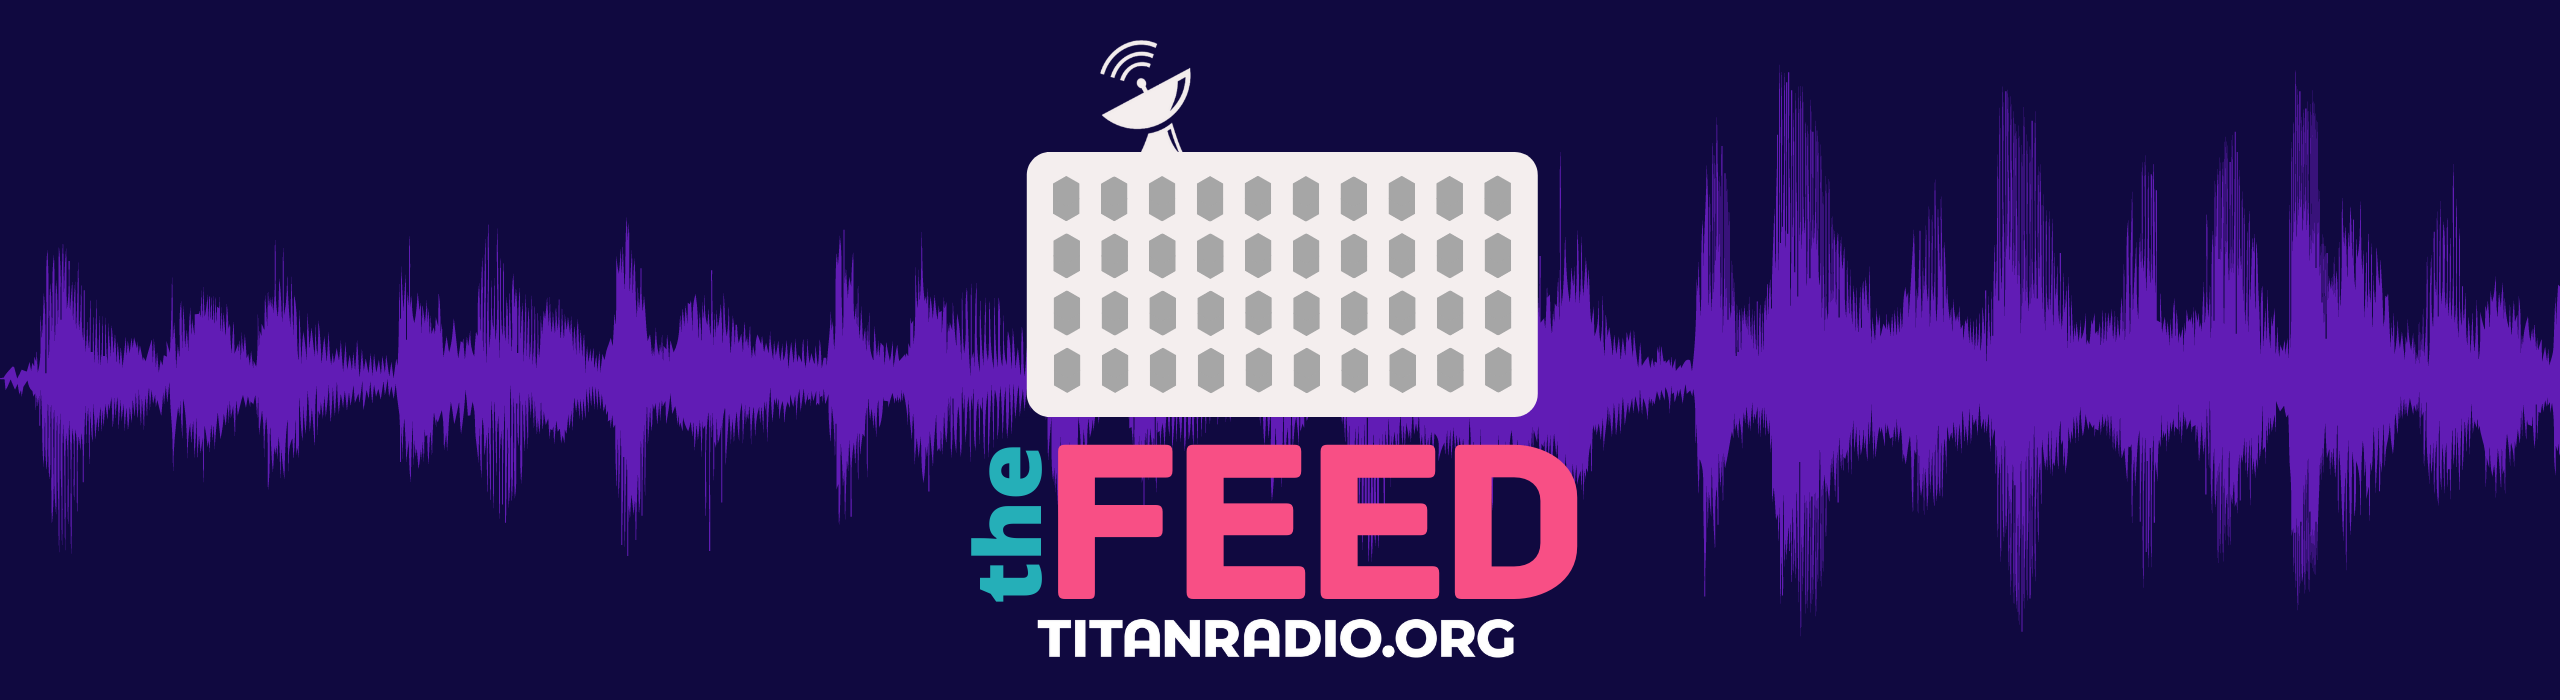 the feed sound wave logo